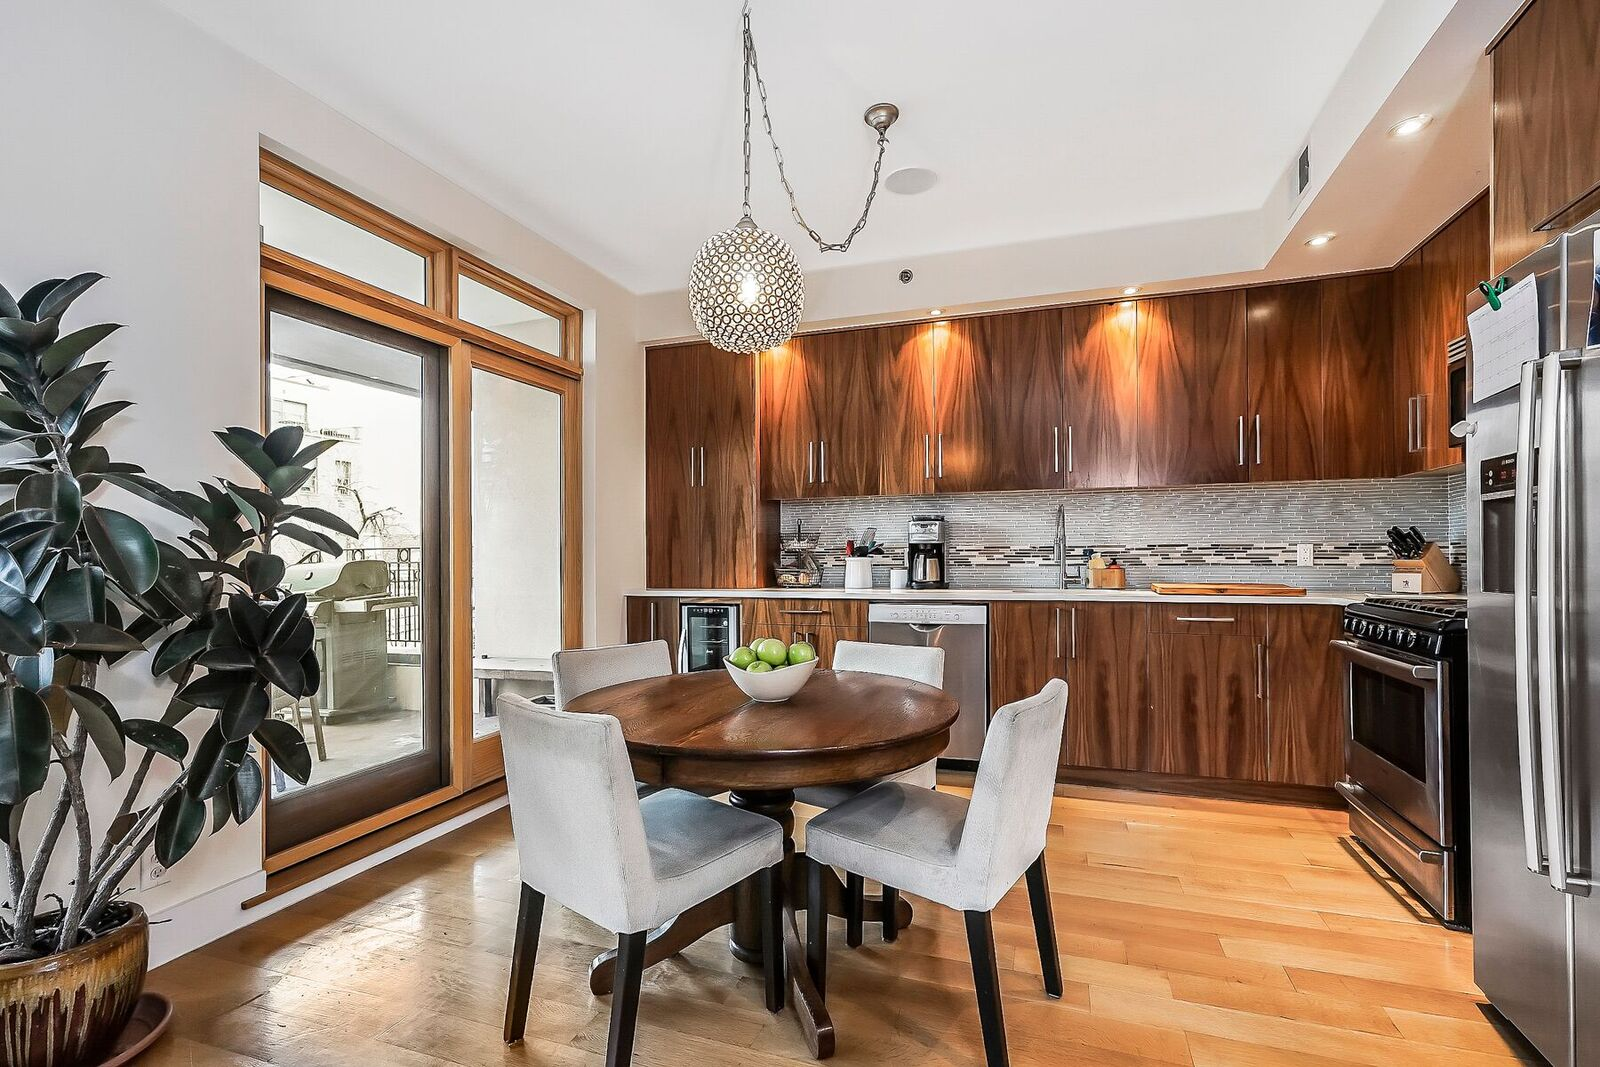 Additional photo for property listing at 61 Java 61 Java Street Brooklyn, New York 11222 United States